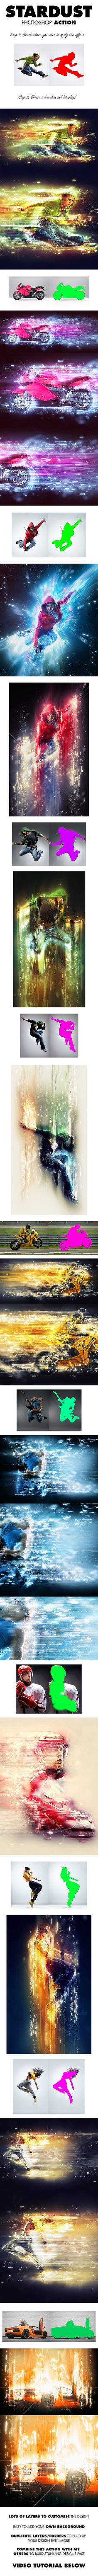 StarDust Photoshop Action | GraphicRiver